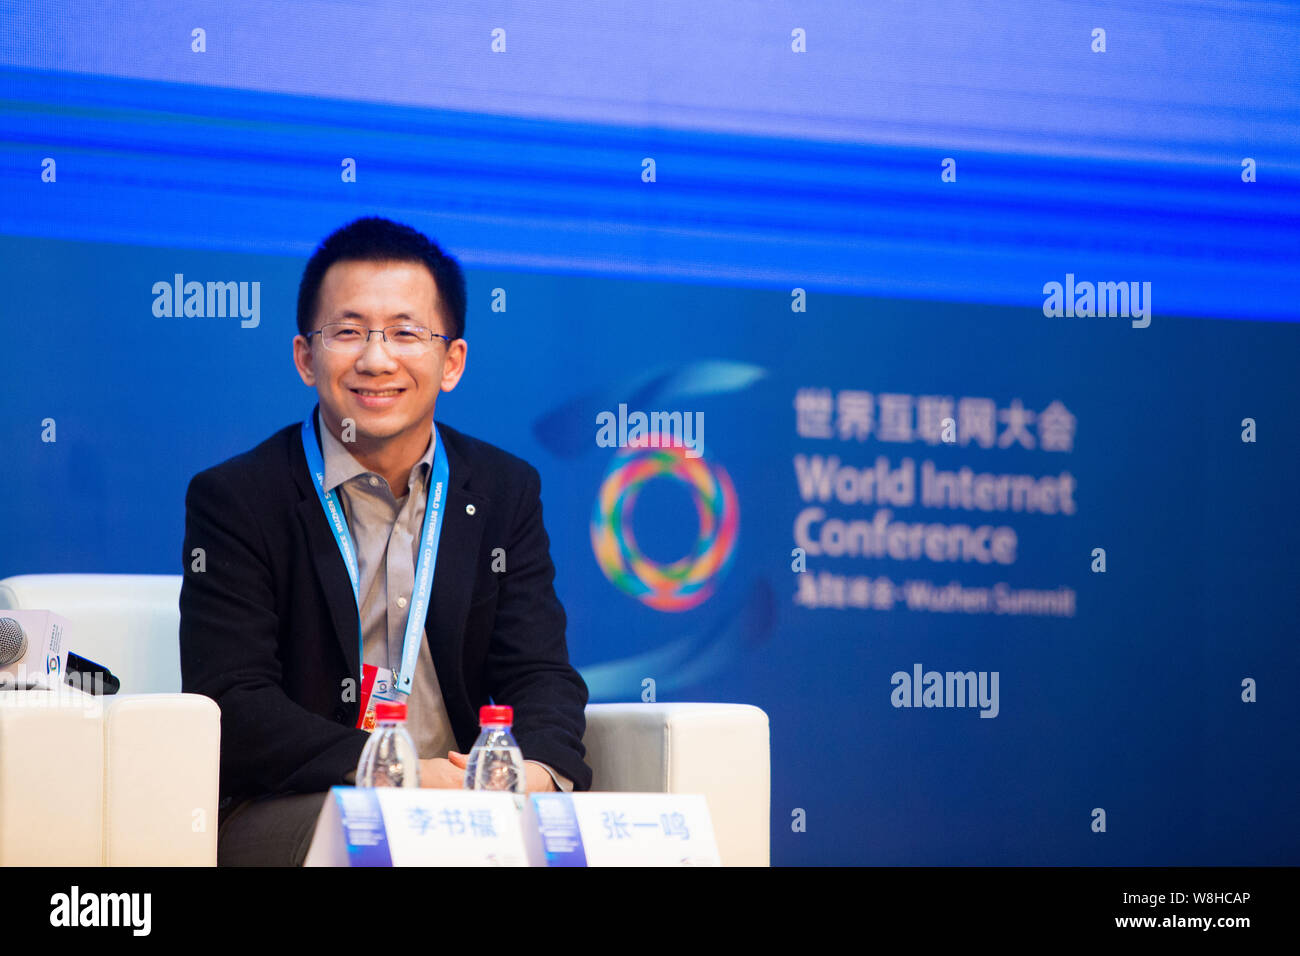 Zhang Yiming, founder and CEO of Chinese personalized news app Toutiao, attends a forum during the 2nd World Internet Conference, also known as Wuzhen Stock Photo